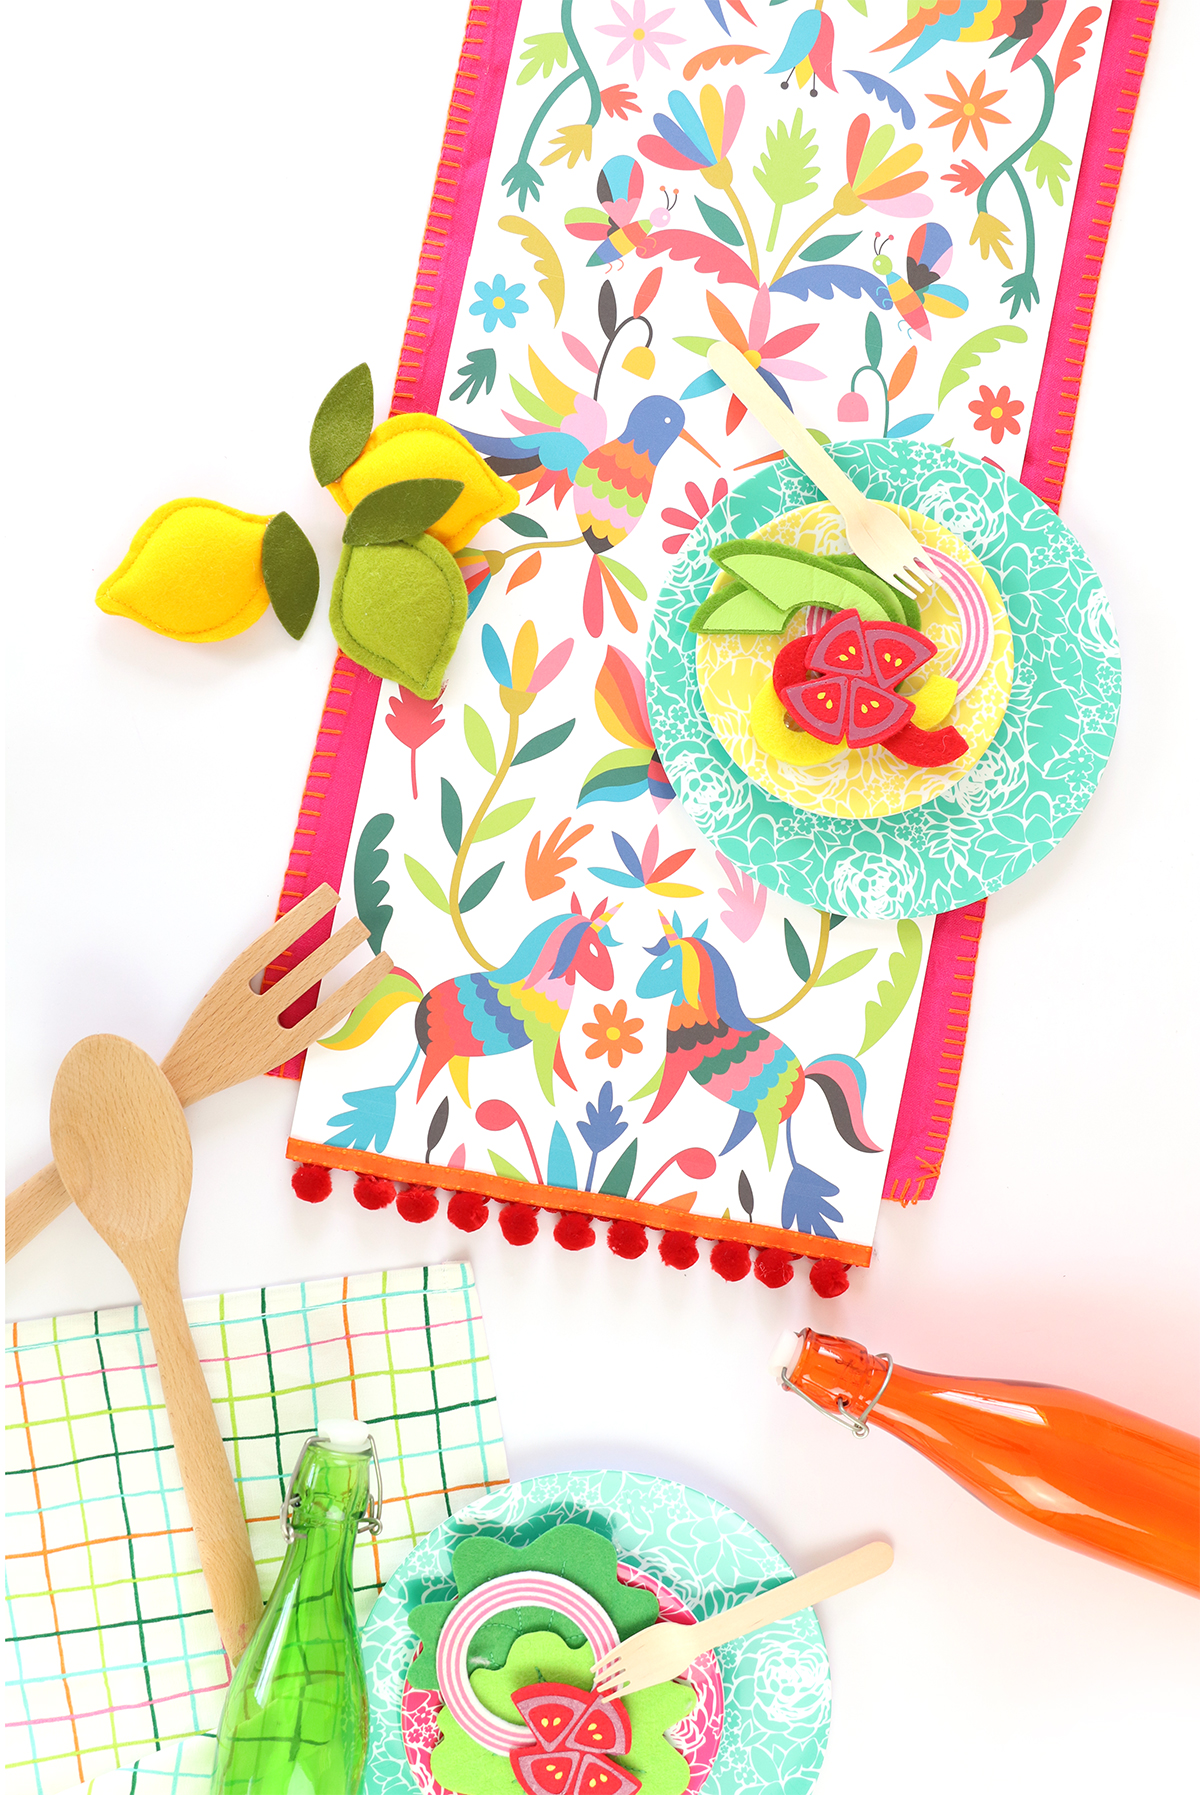 Top 20 Cinco de Mayo Projects - Printable Table Runner from Damask Love | Squirrelly Minds